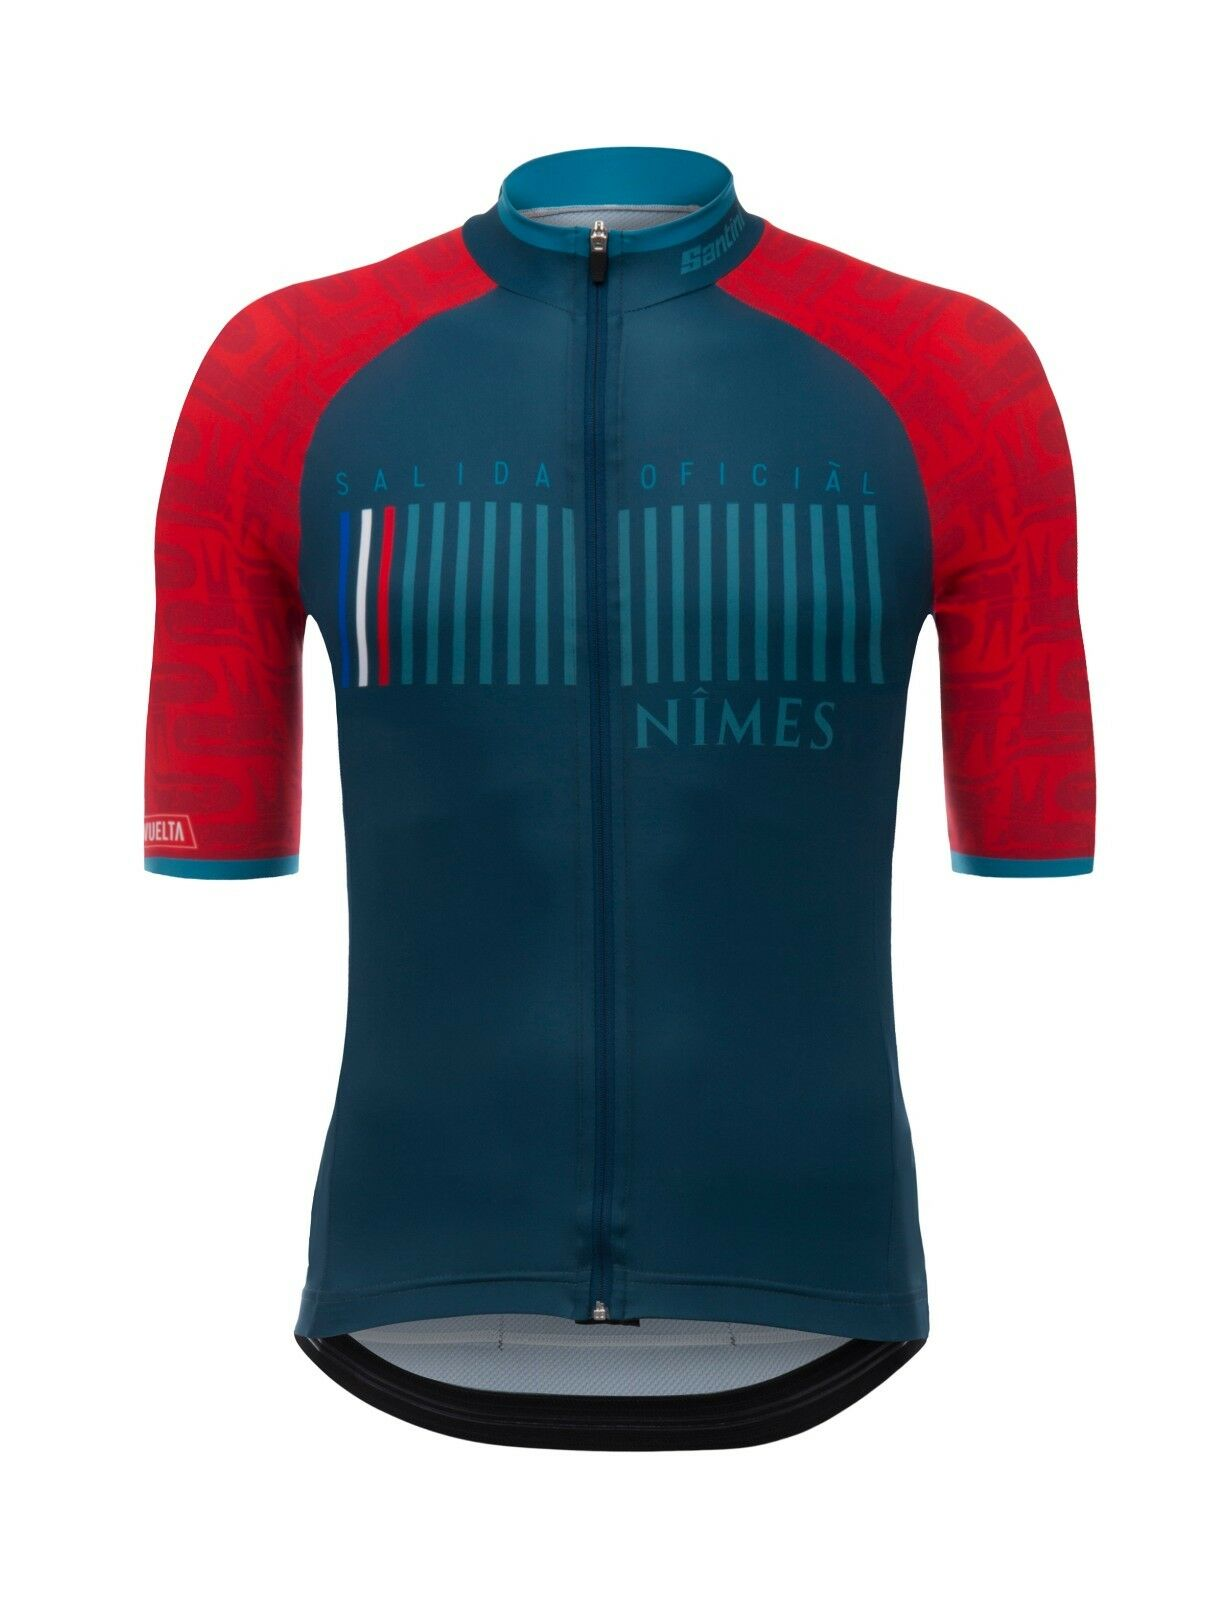 2017 La Vuelta a Espana Nimes Cycling Jersey  Made in  by Santini